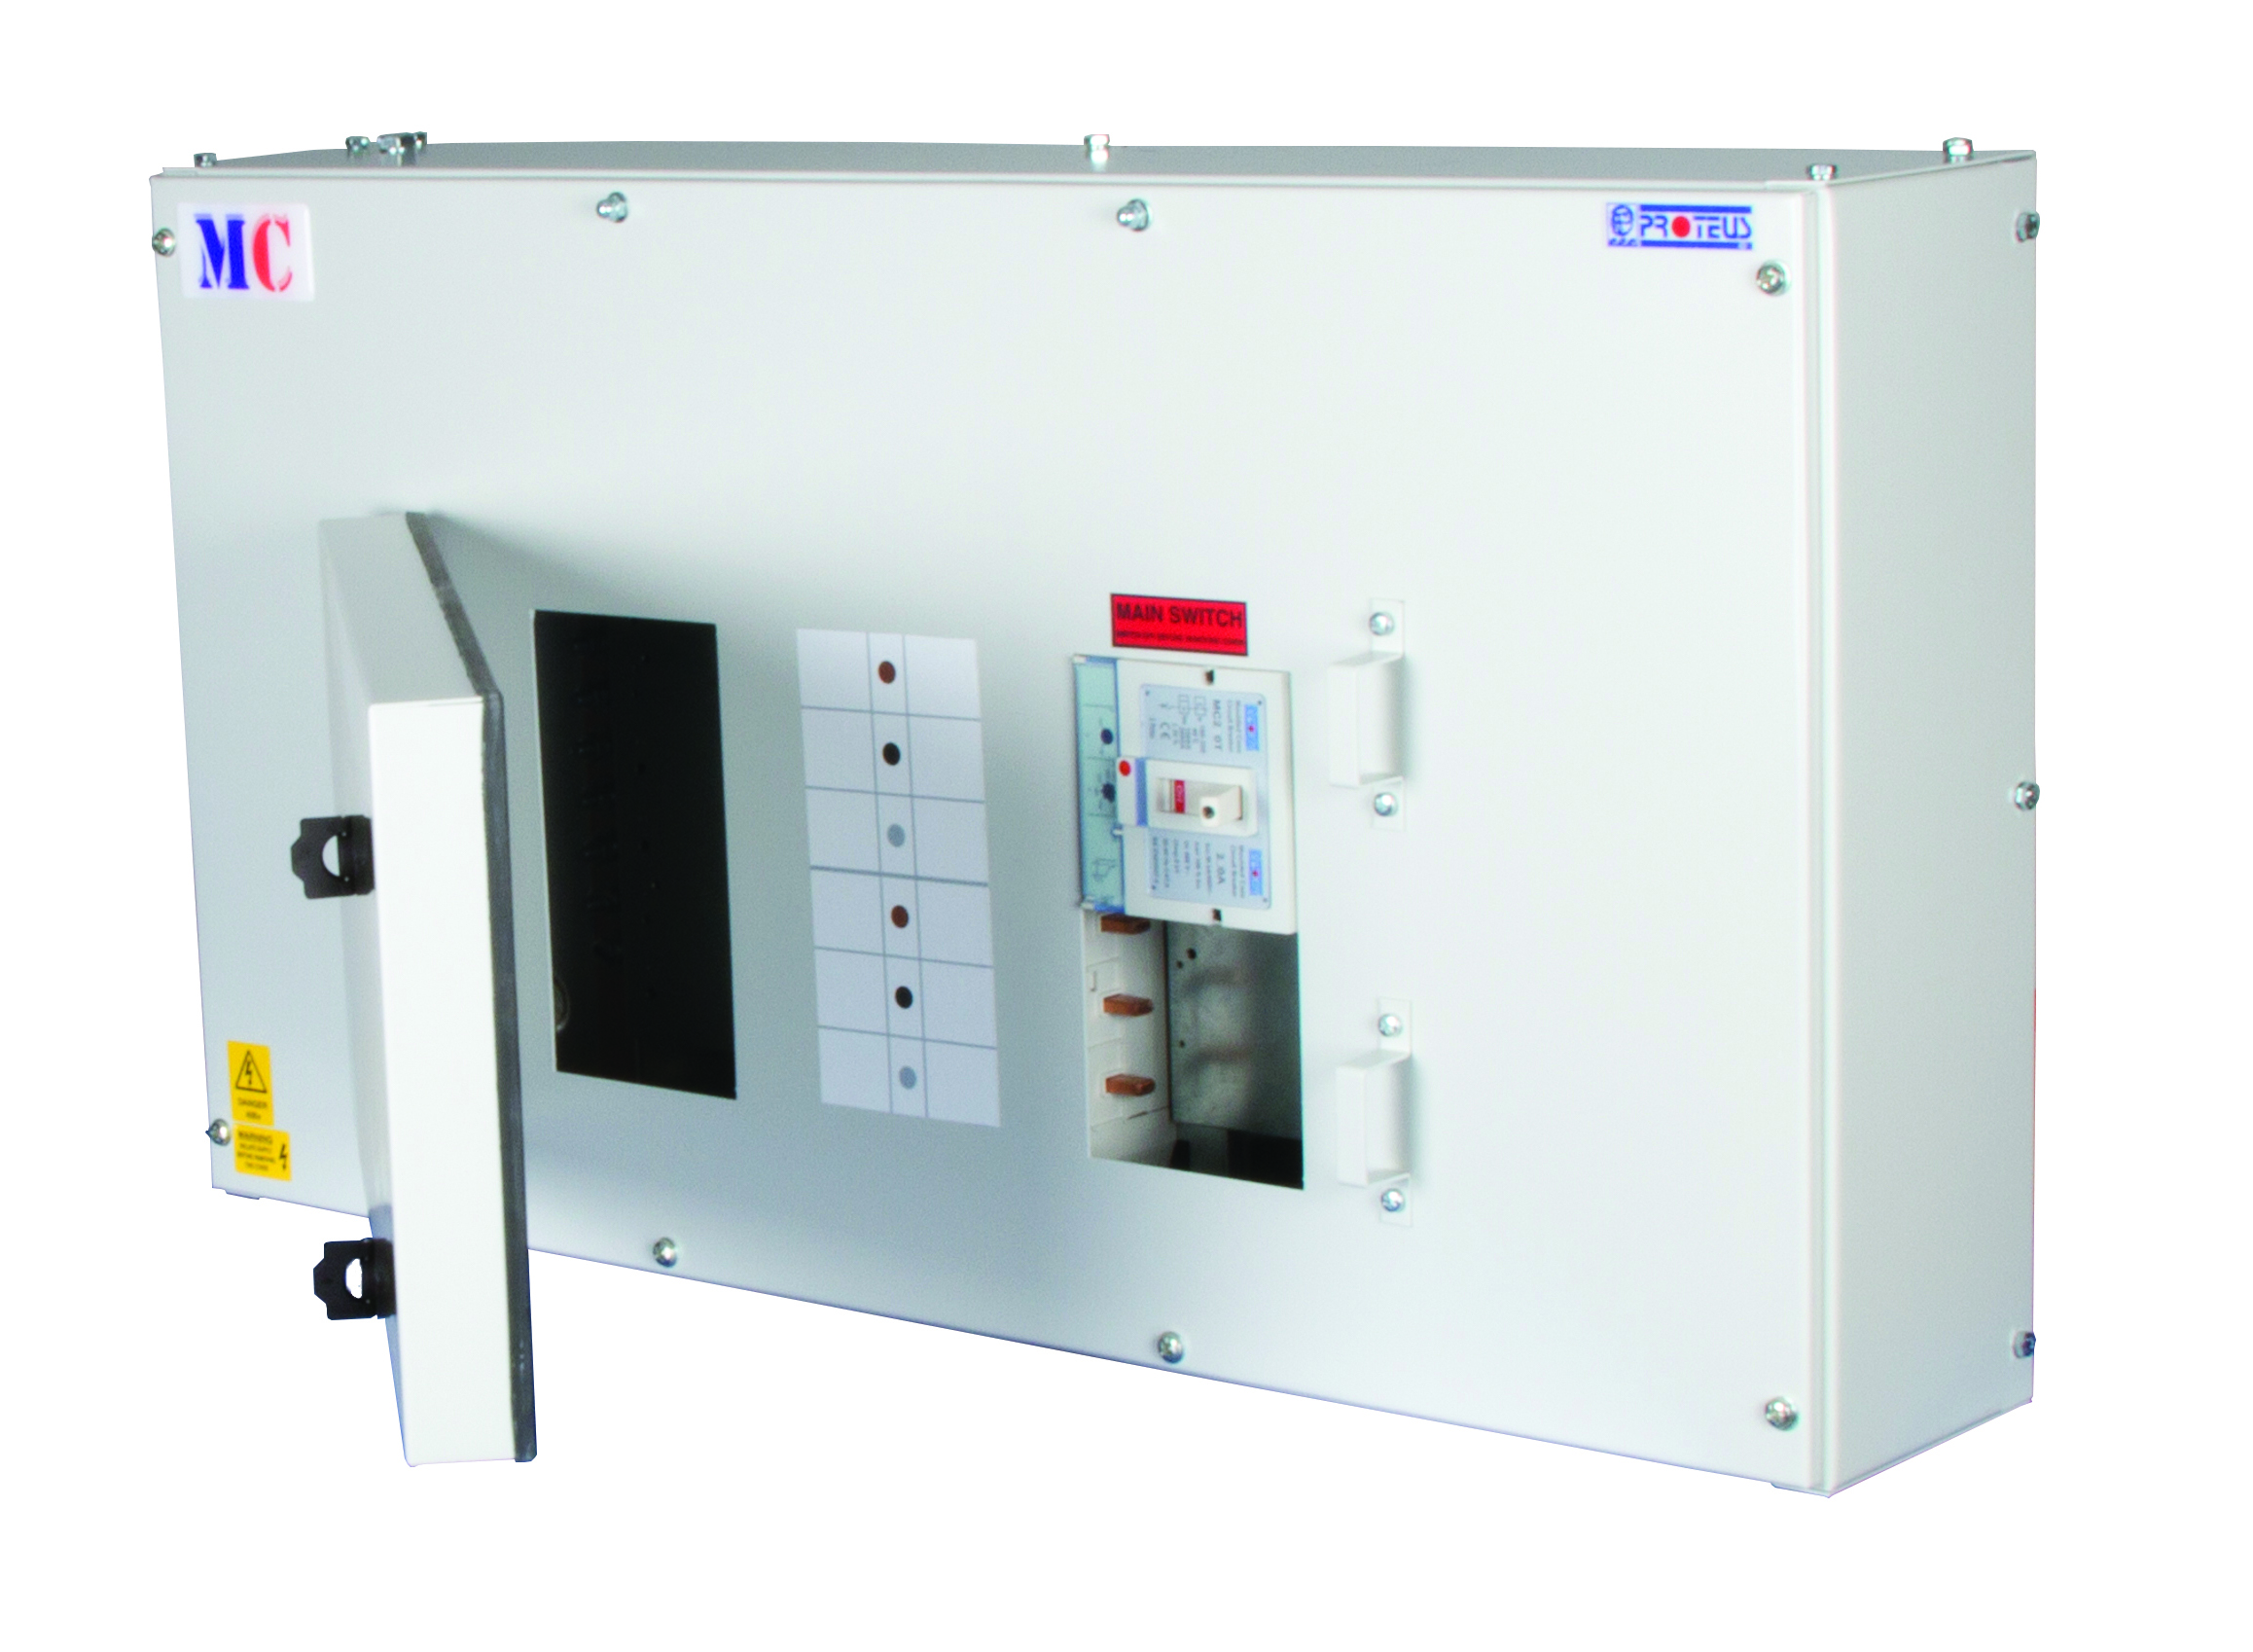 Rcd 200 Wiring Diagram House Symbols Fantastic For Garage Consumer Unit Frieze Everything You Need To Know About Circuit